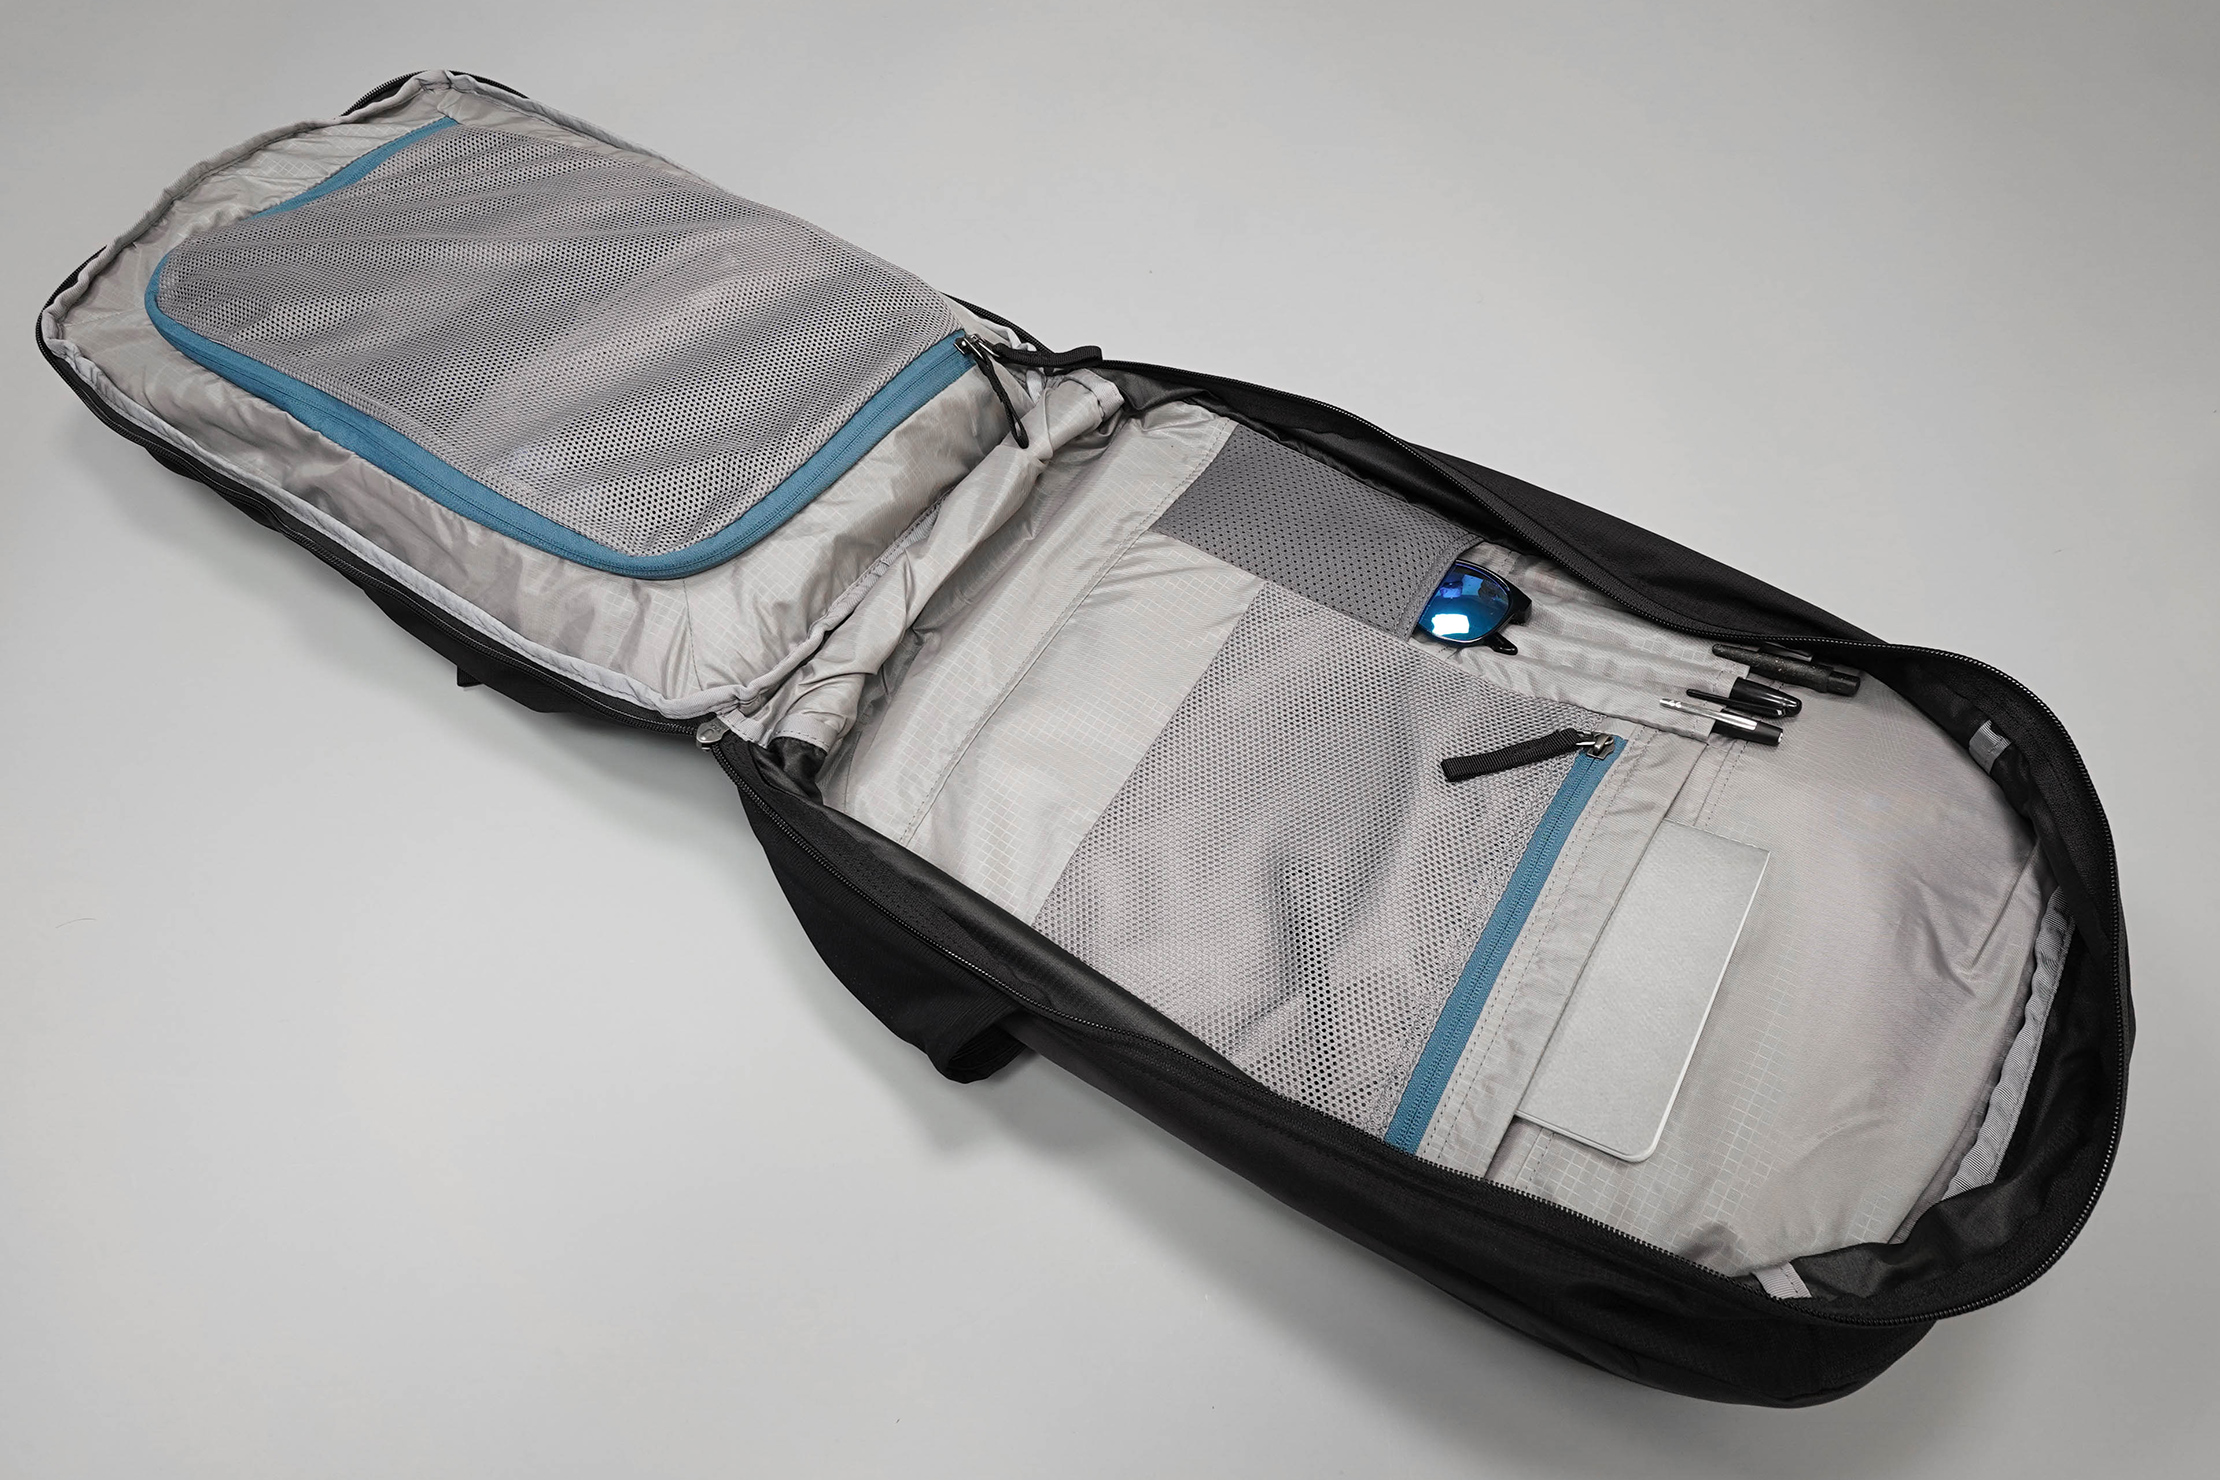 Gregory Border 35 Main Compartment Open Clamshell-Style